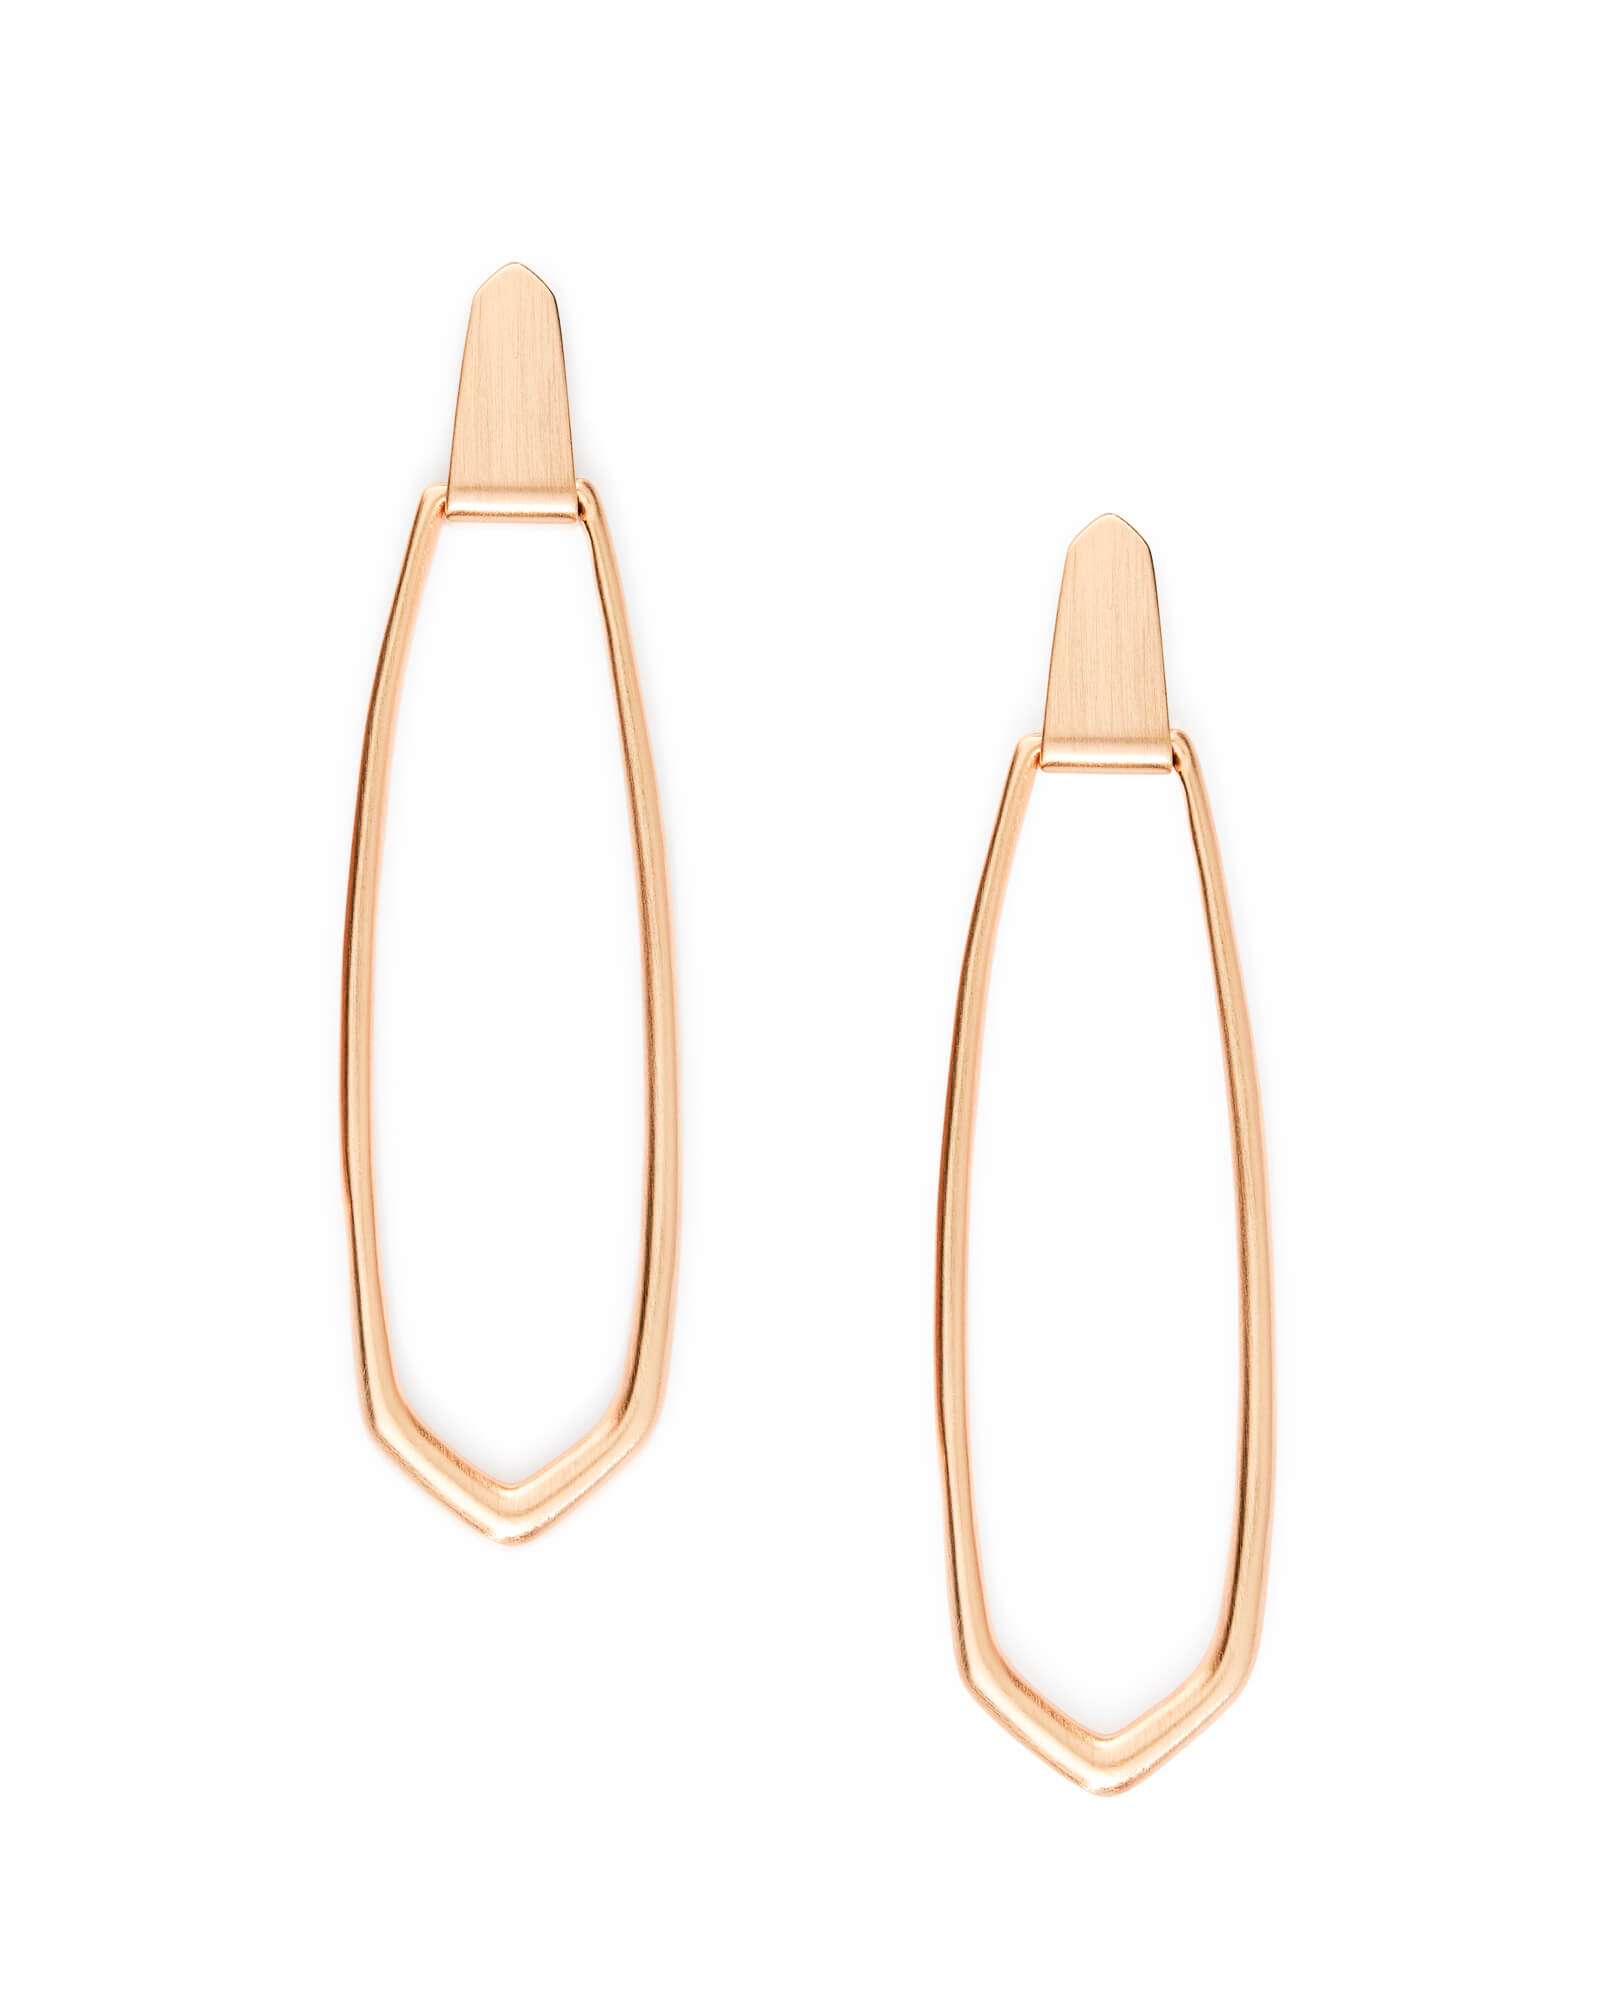 Patterson Hoop Earrings in Rose Gold